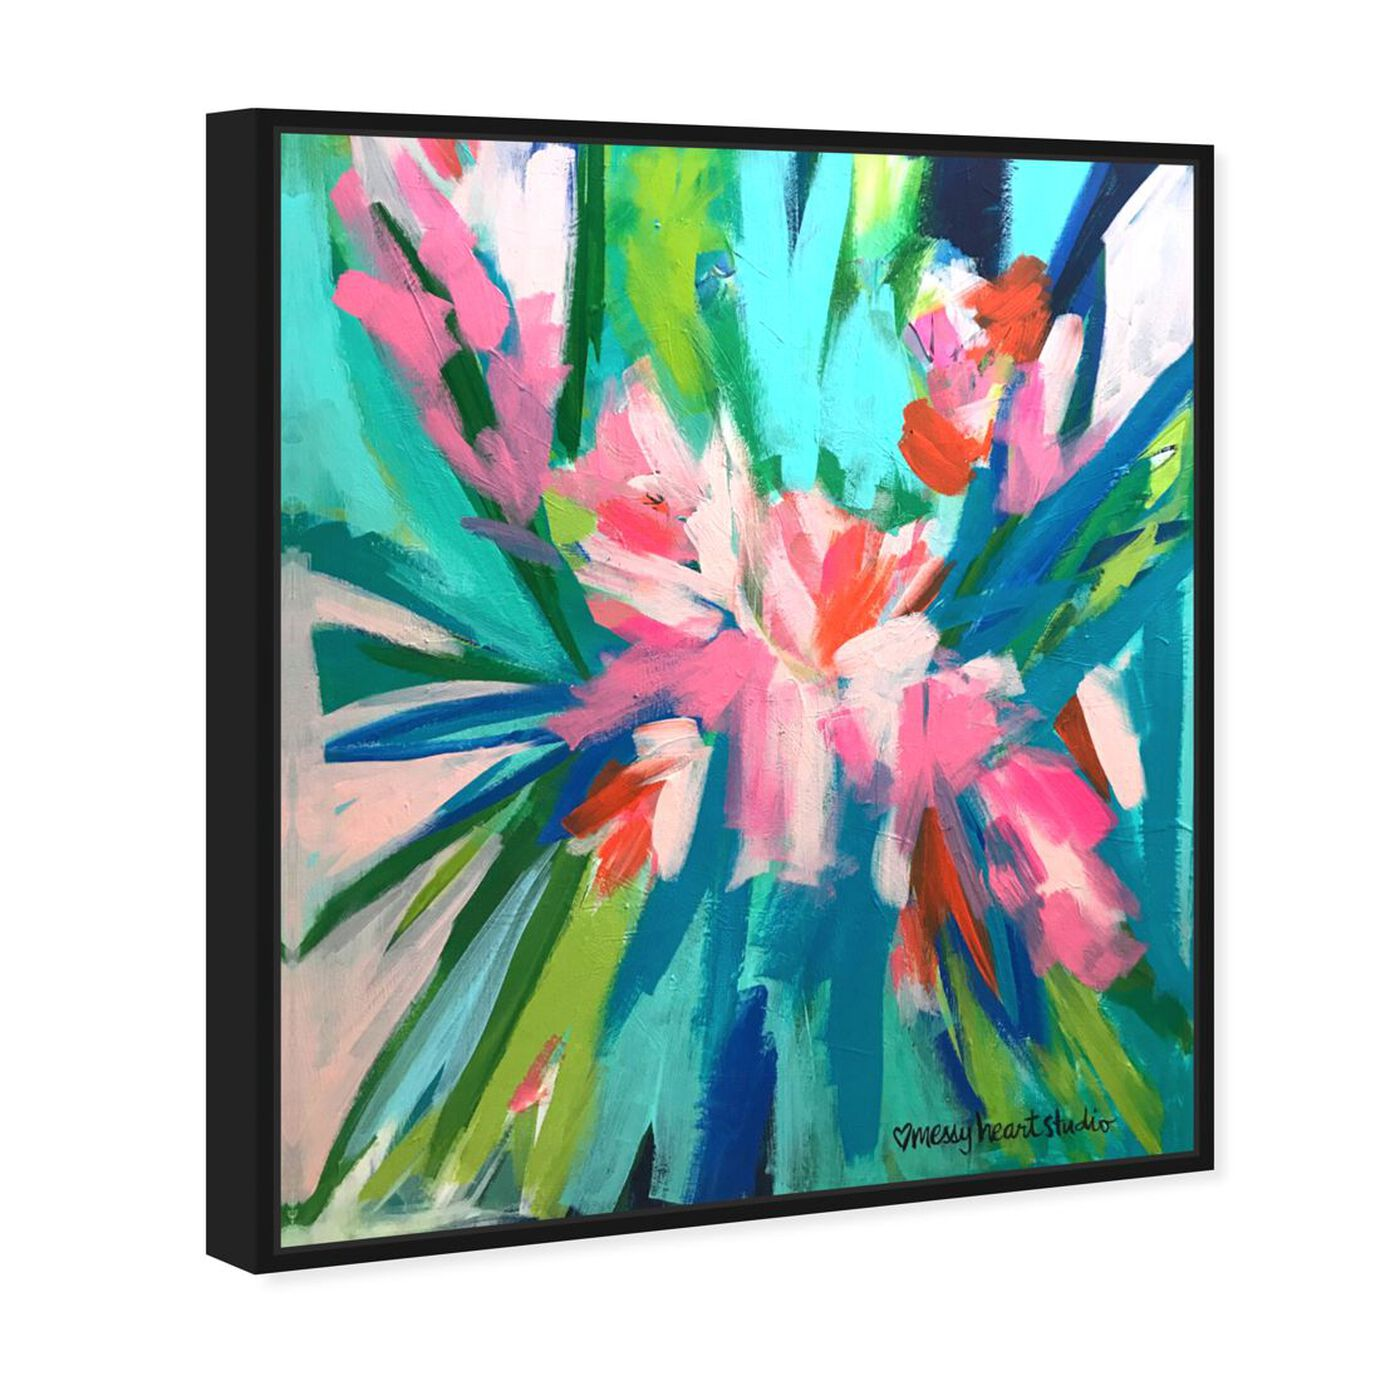 Angled view of Lourdes Wackes -Garden Party II featuring abstract and flowers art.